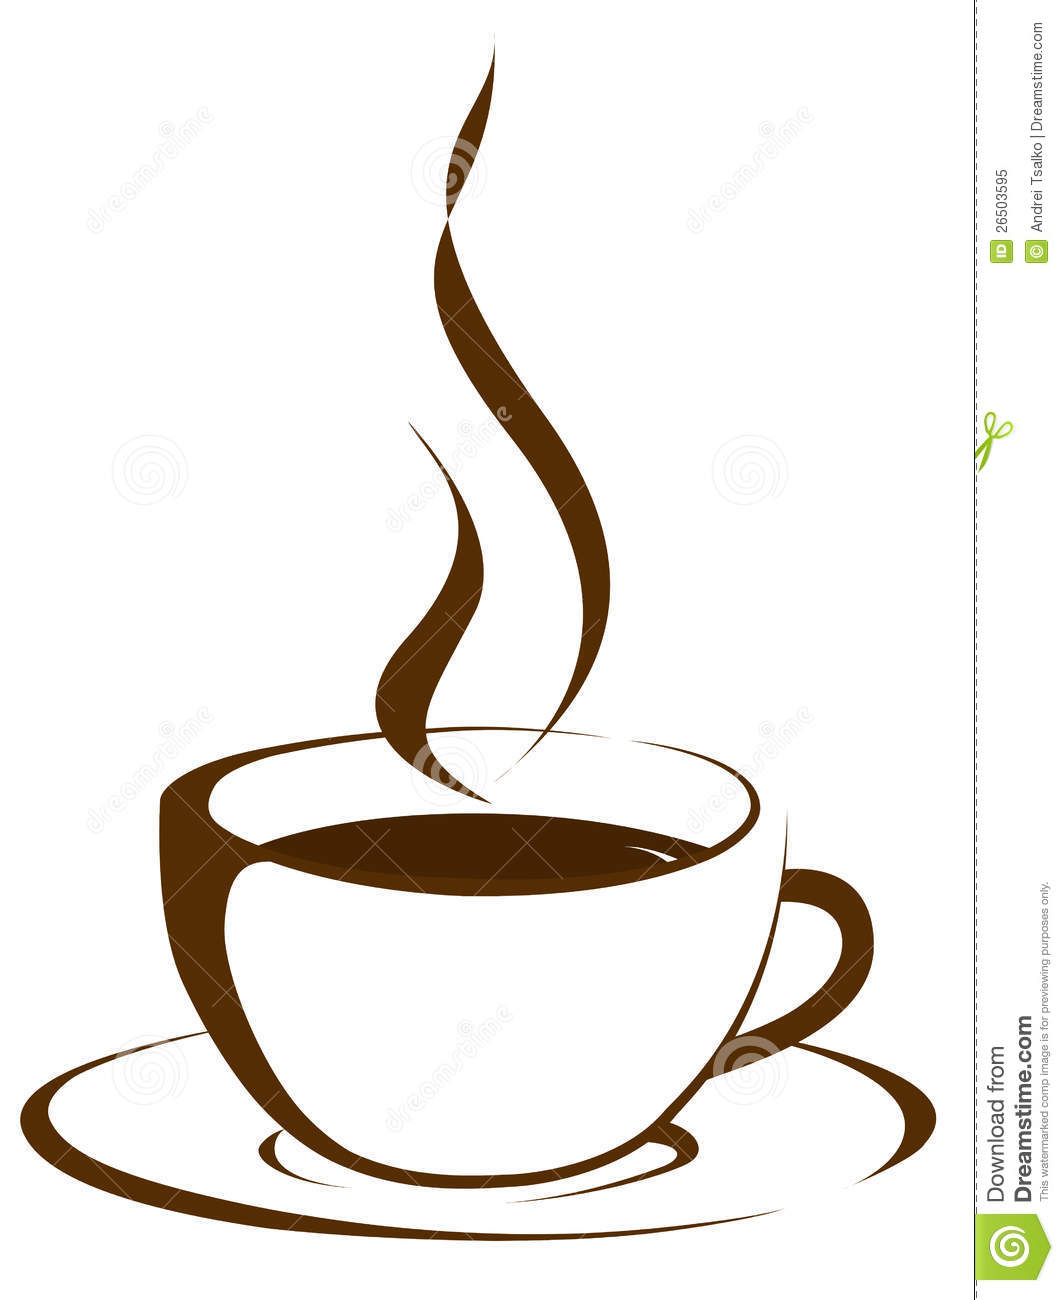 Cup of coffee with steam | Clipart Panda - Free Clipart Images